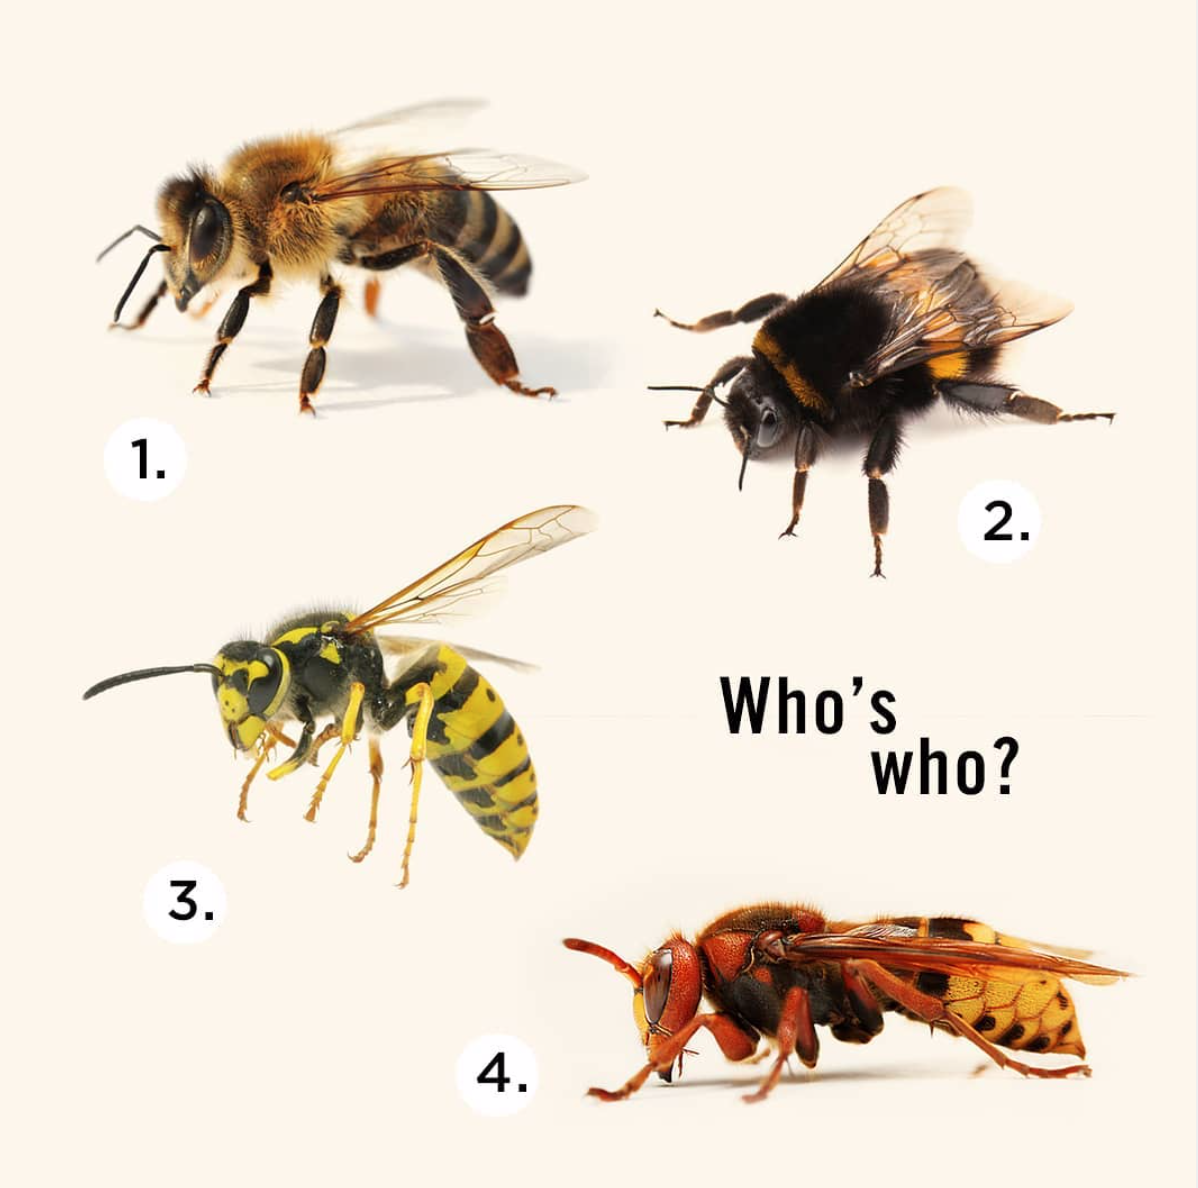 Learn the difference: 1. Honey bee 2. Bumble bee 3. Wasp 4. European Hornet